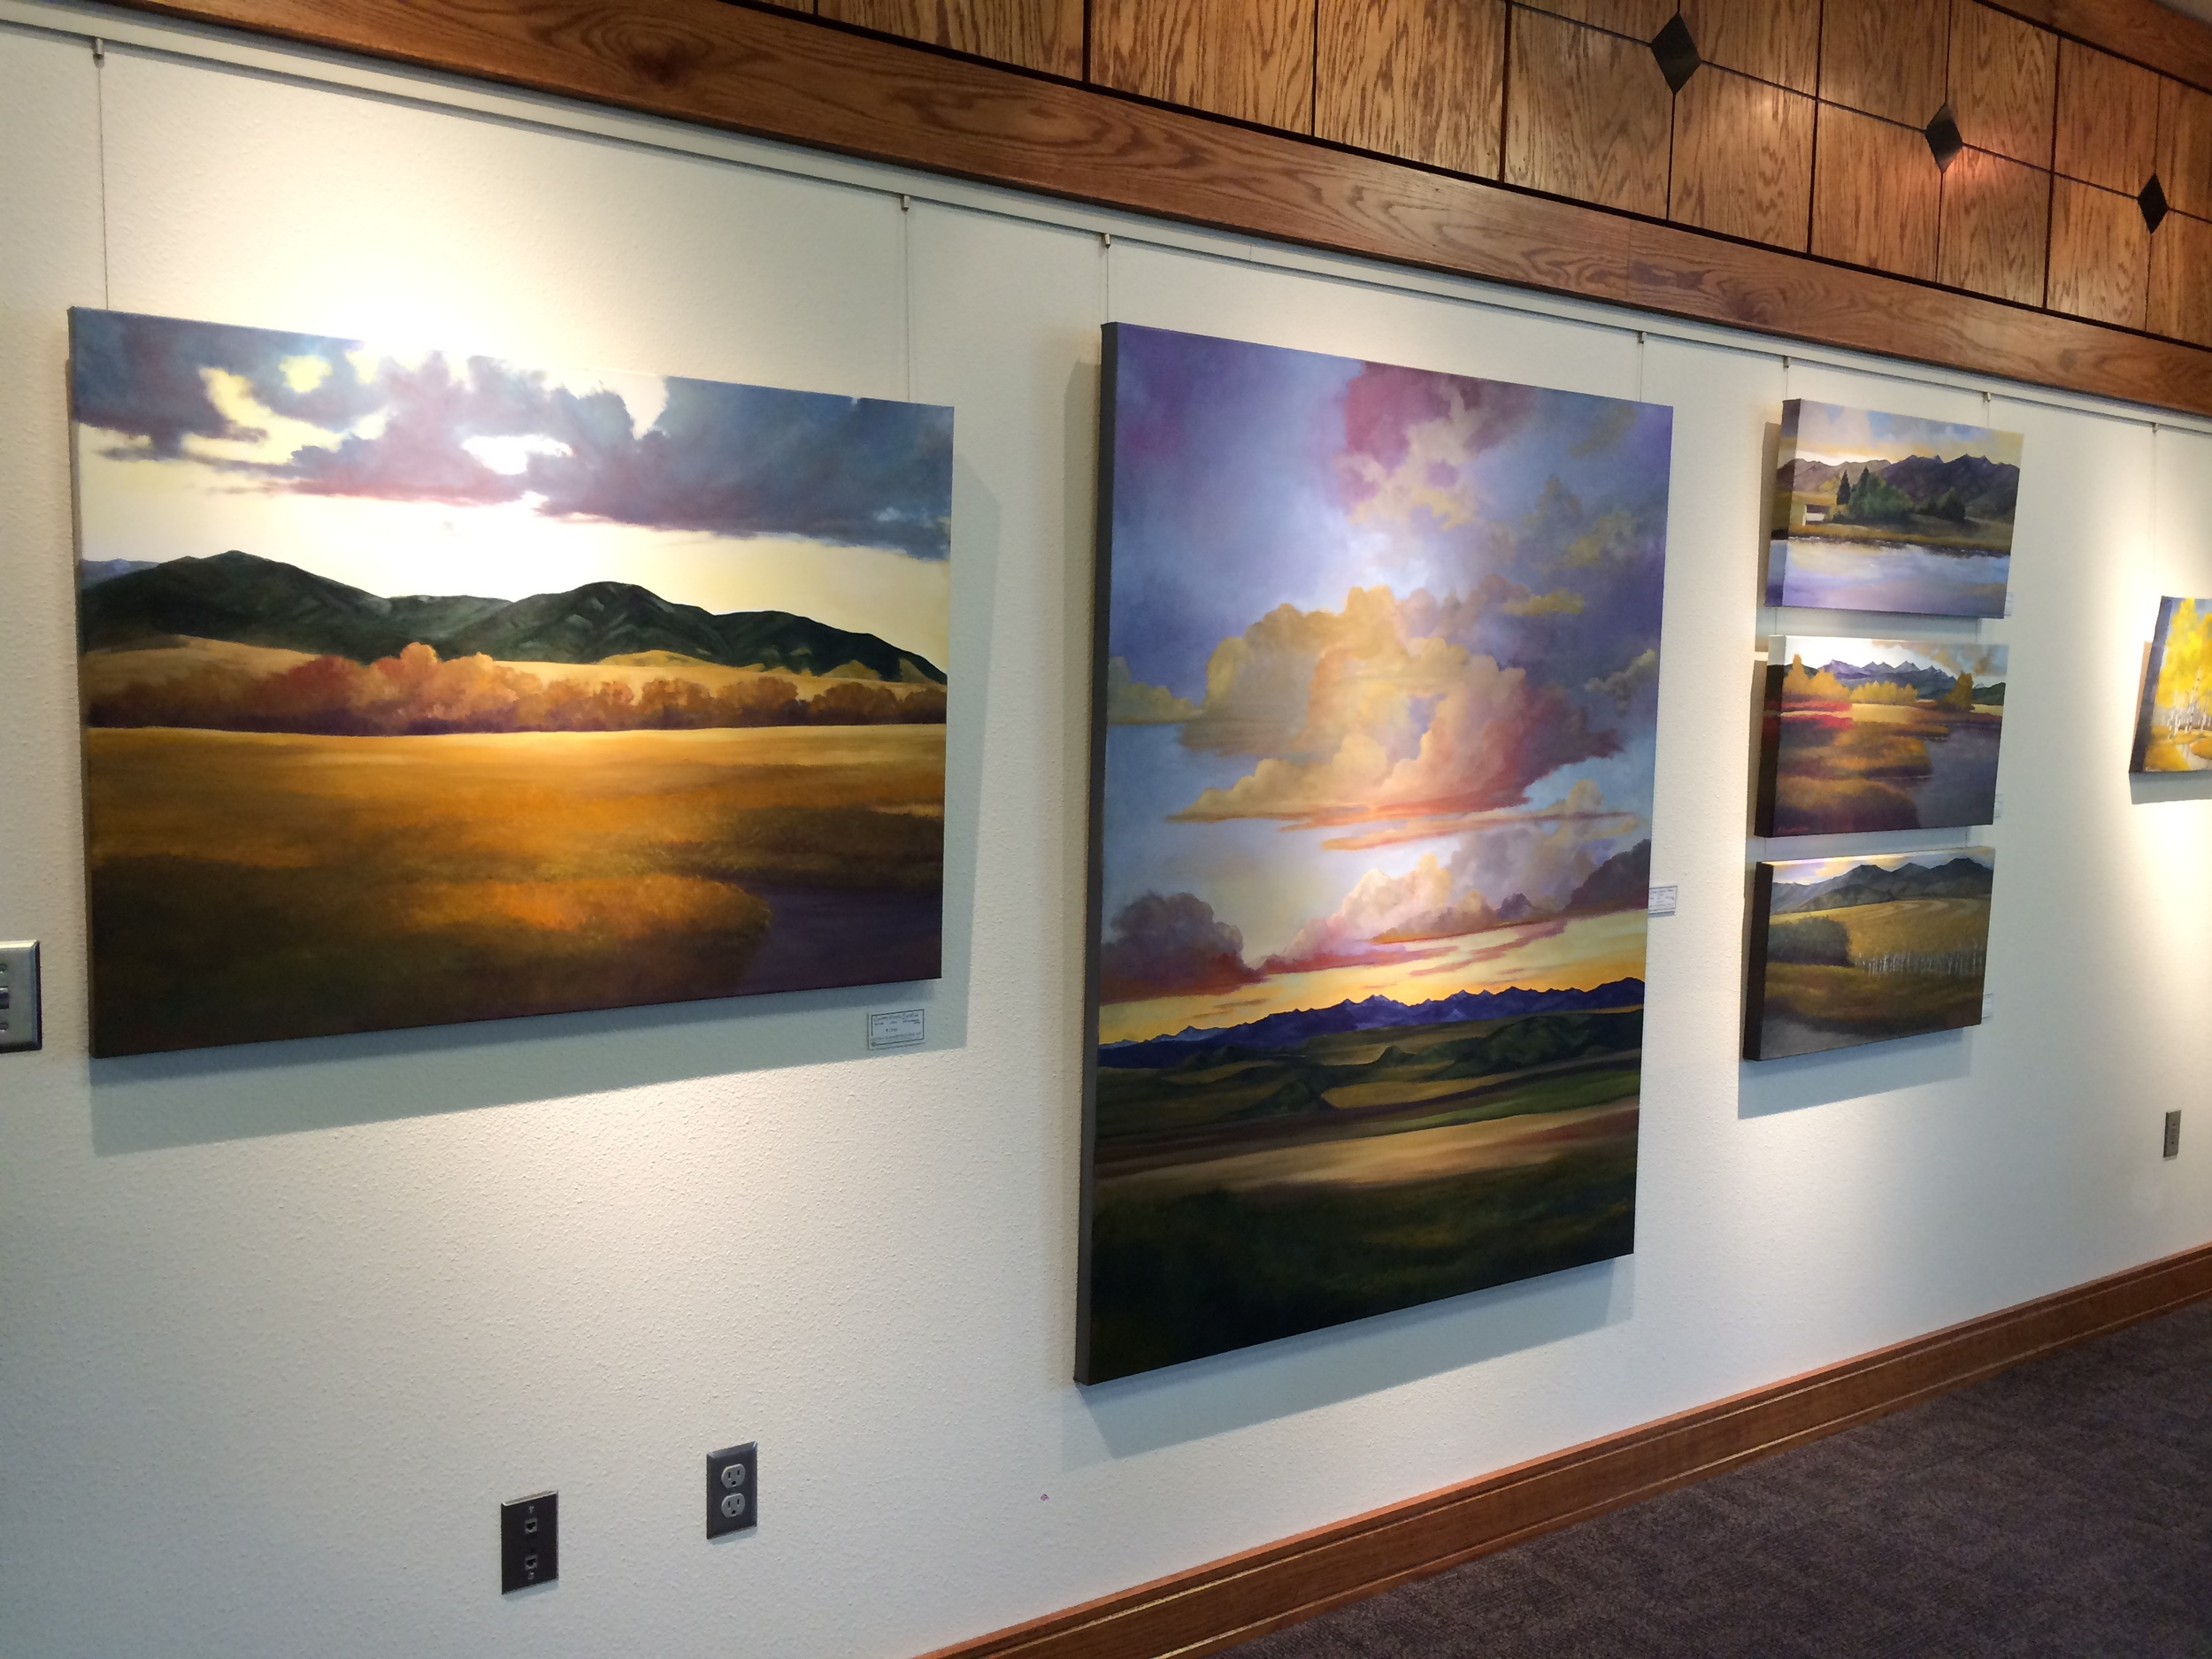 Zoot Gallery Show: Two Women, Two Visitons, One Love for the Montana Landscape. Nov. 2014- Feb. 2015   555 Zoot Enterprises Lane Four Corners M-F 8-4